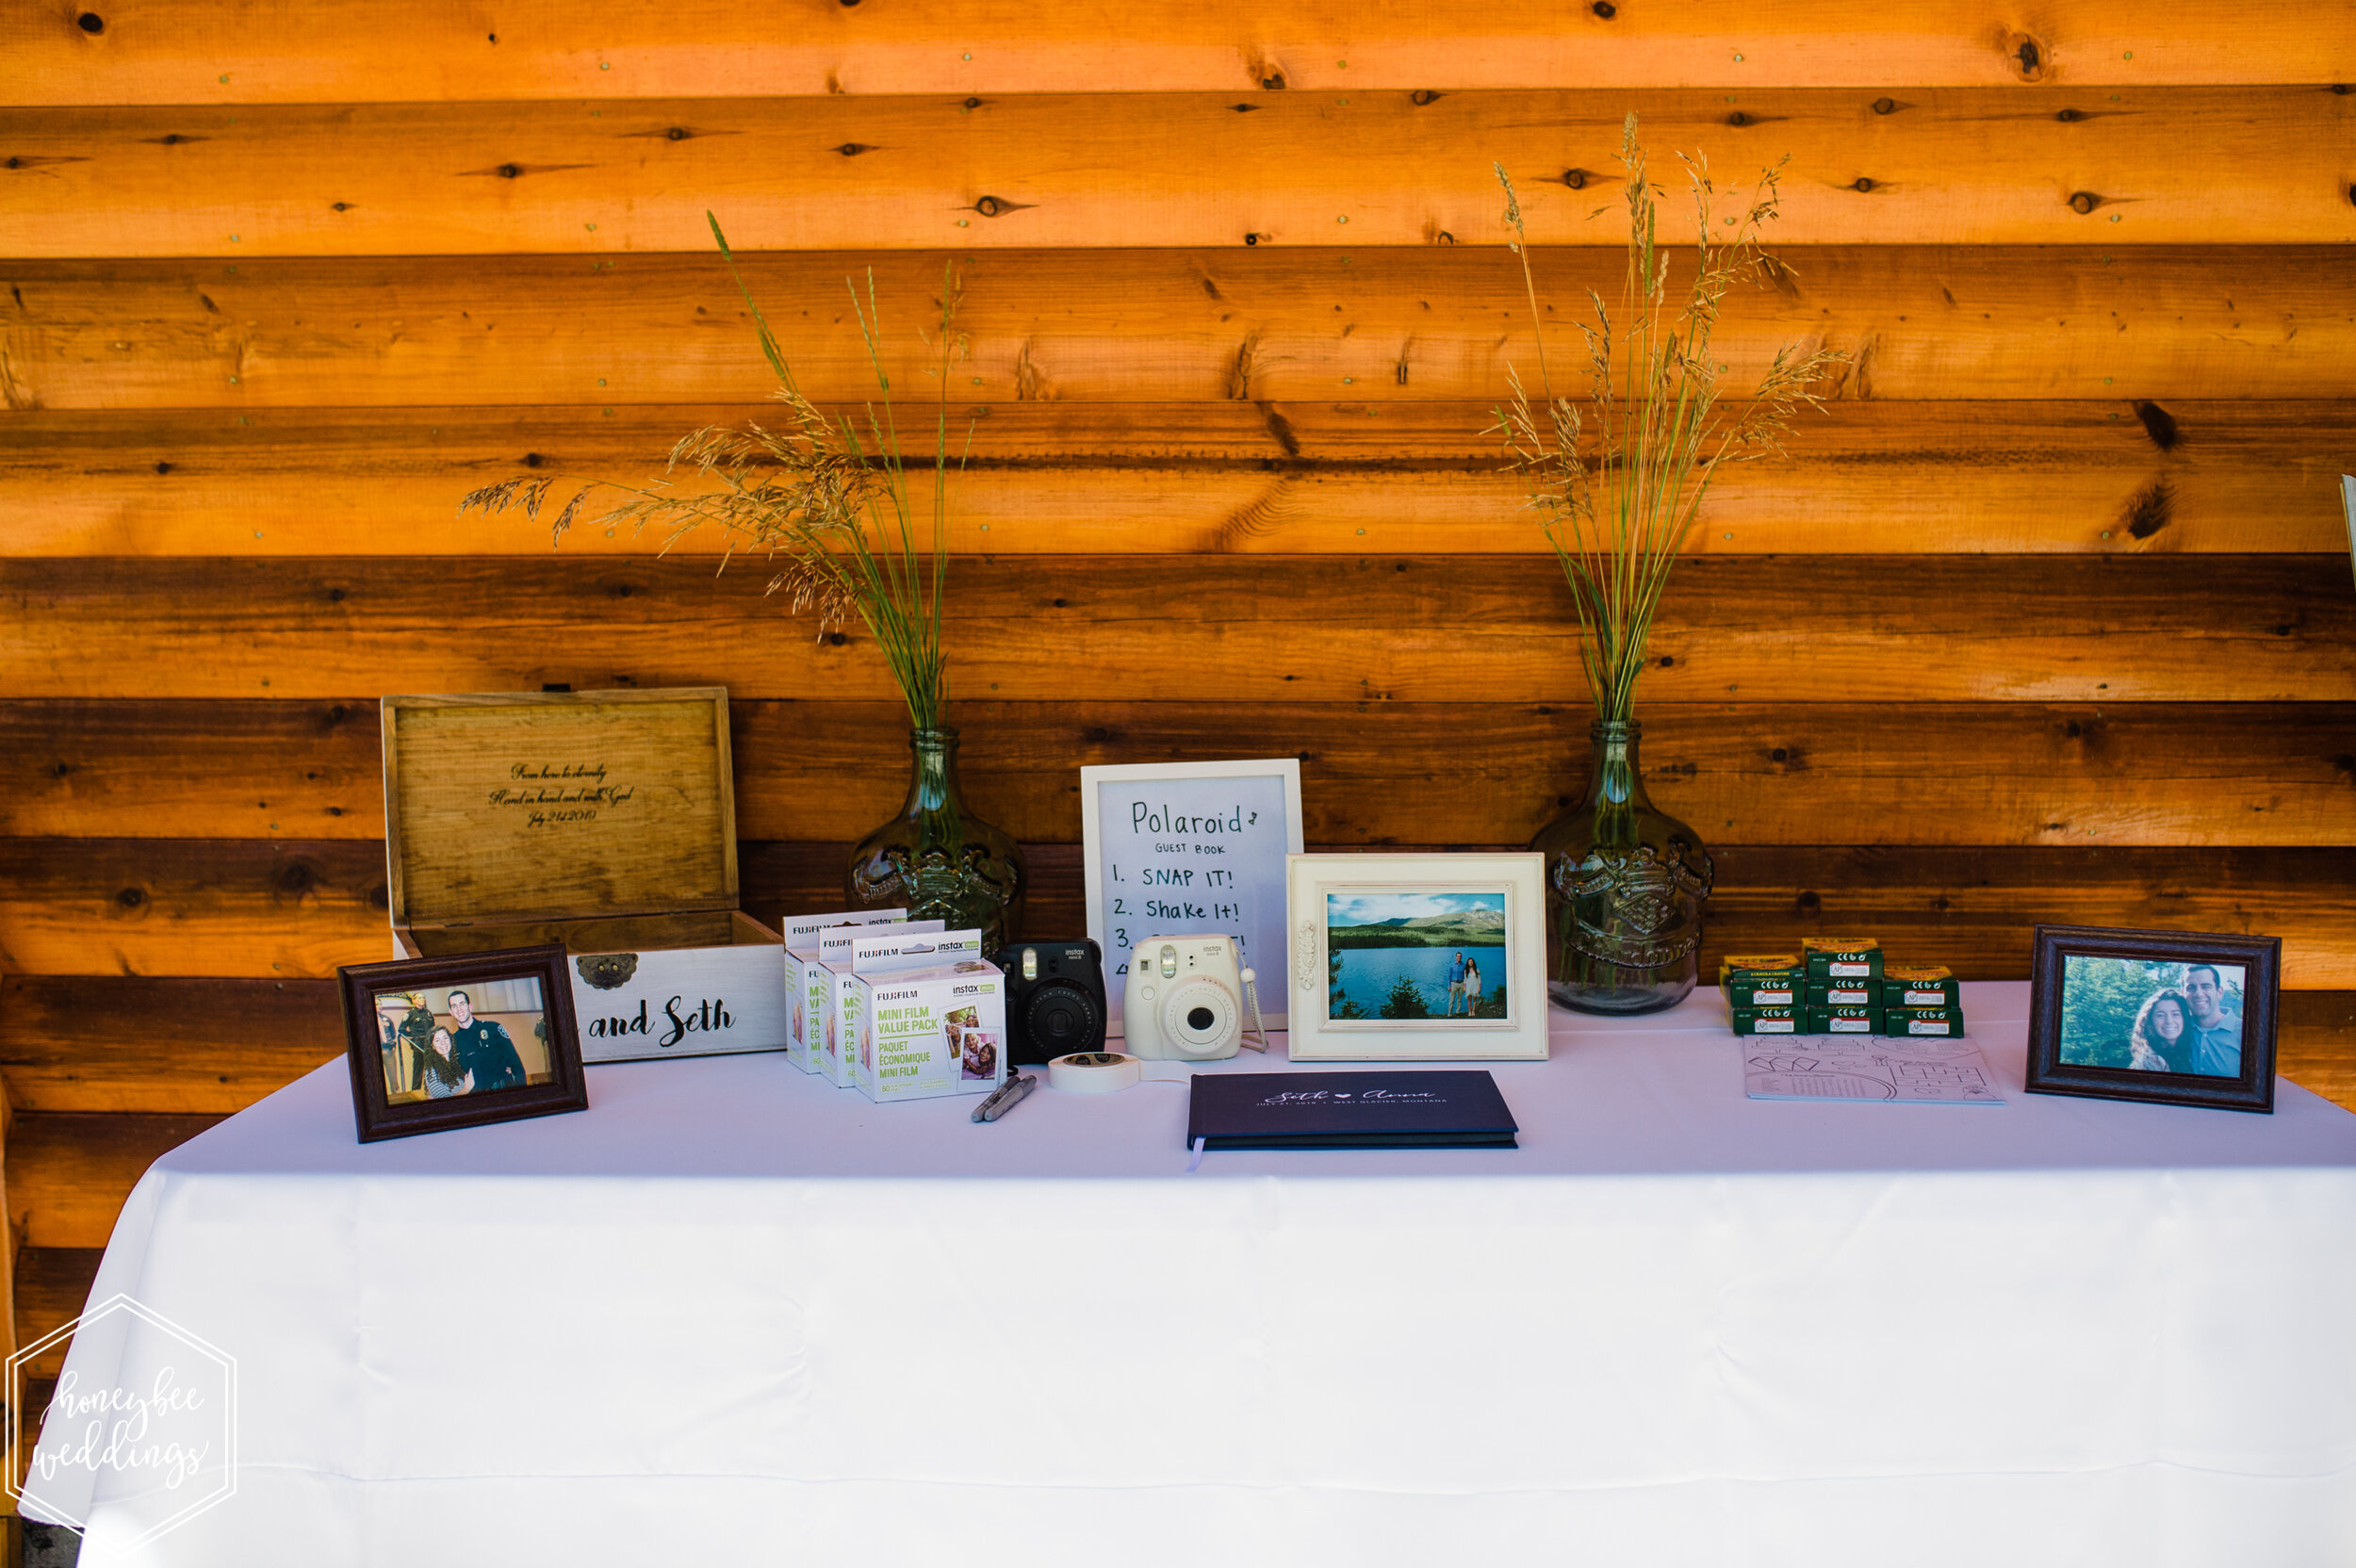 001Glacier National Park Wedding_Glacier Outdoor Center_Honeybee Weddings_Anna & Seth_July 21, 2019-1812.jpg